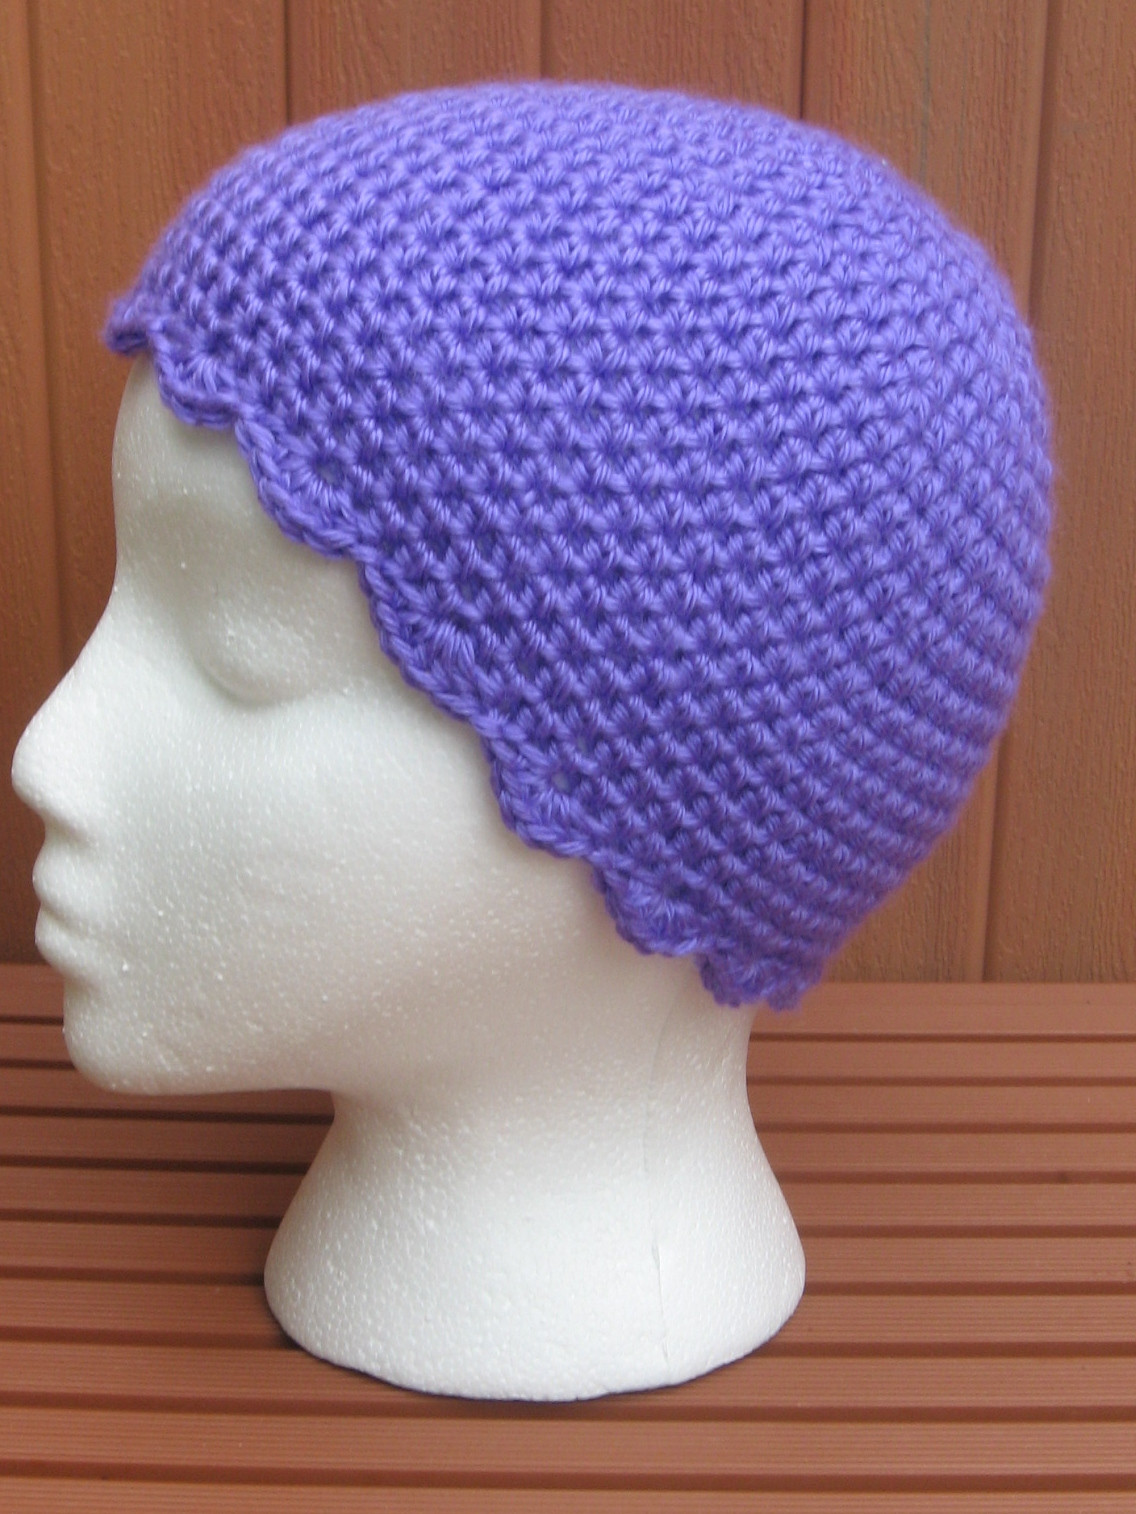 Free Crochet Chemo Hat Patterns New Crochet Projects Crochet Chemo Sleep Cap Of Awesome 43 Ideas Free Crochet Chemo Hat Patterns